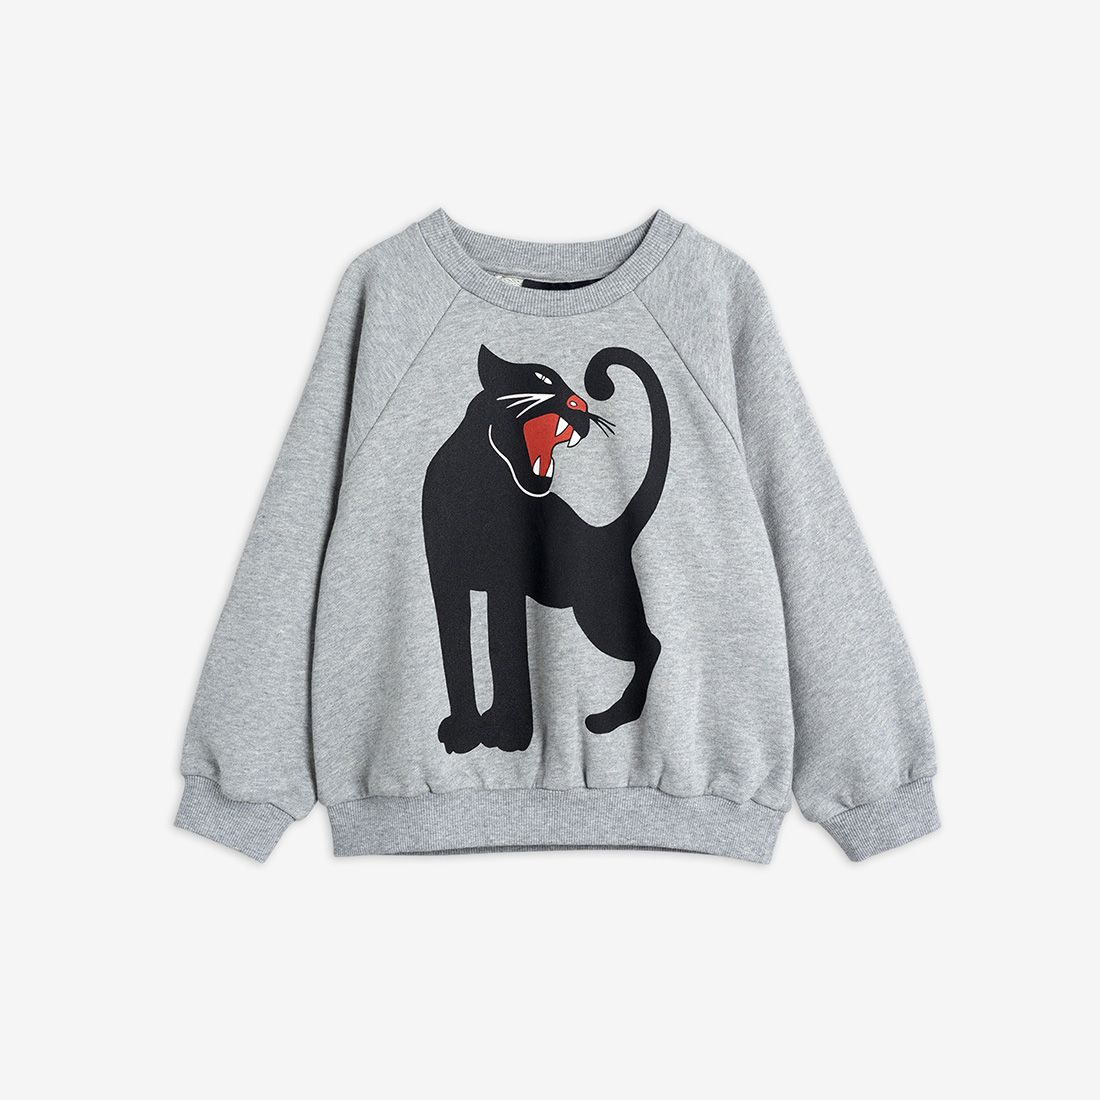 Light Grey Panther Sweatshirt